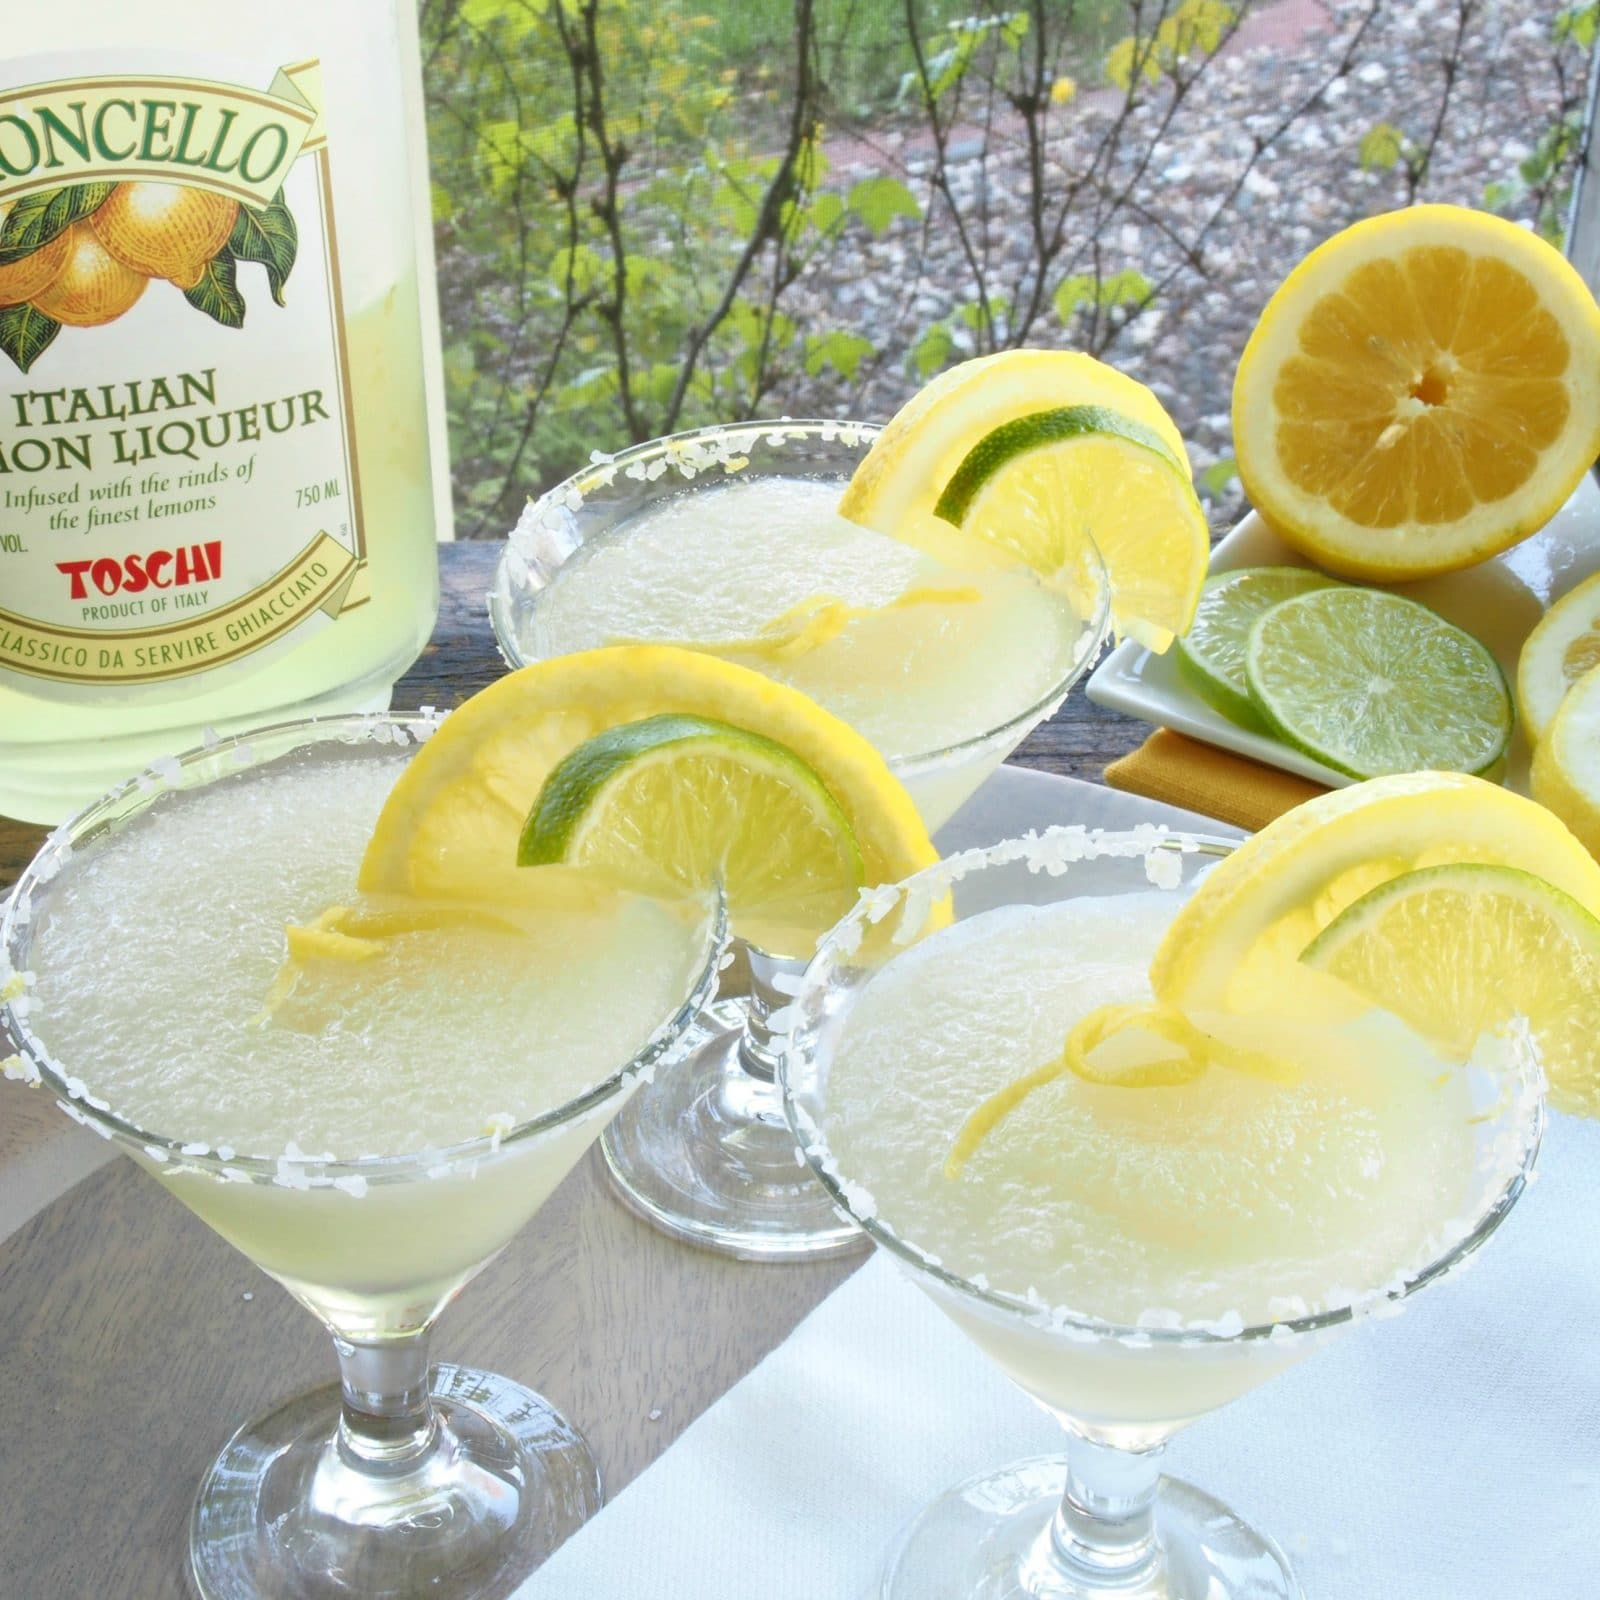 Limoncello Margarita is sweet, sour, light & refreshing. Limoncello, lime, Triple Sec & Tequila. Add a touch of sweetness and you have a glass of pure sunshine.